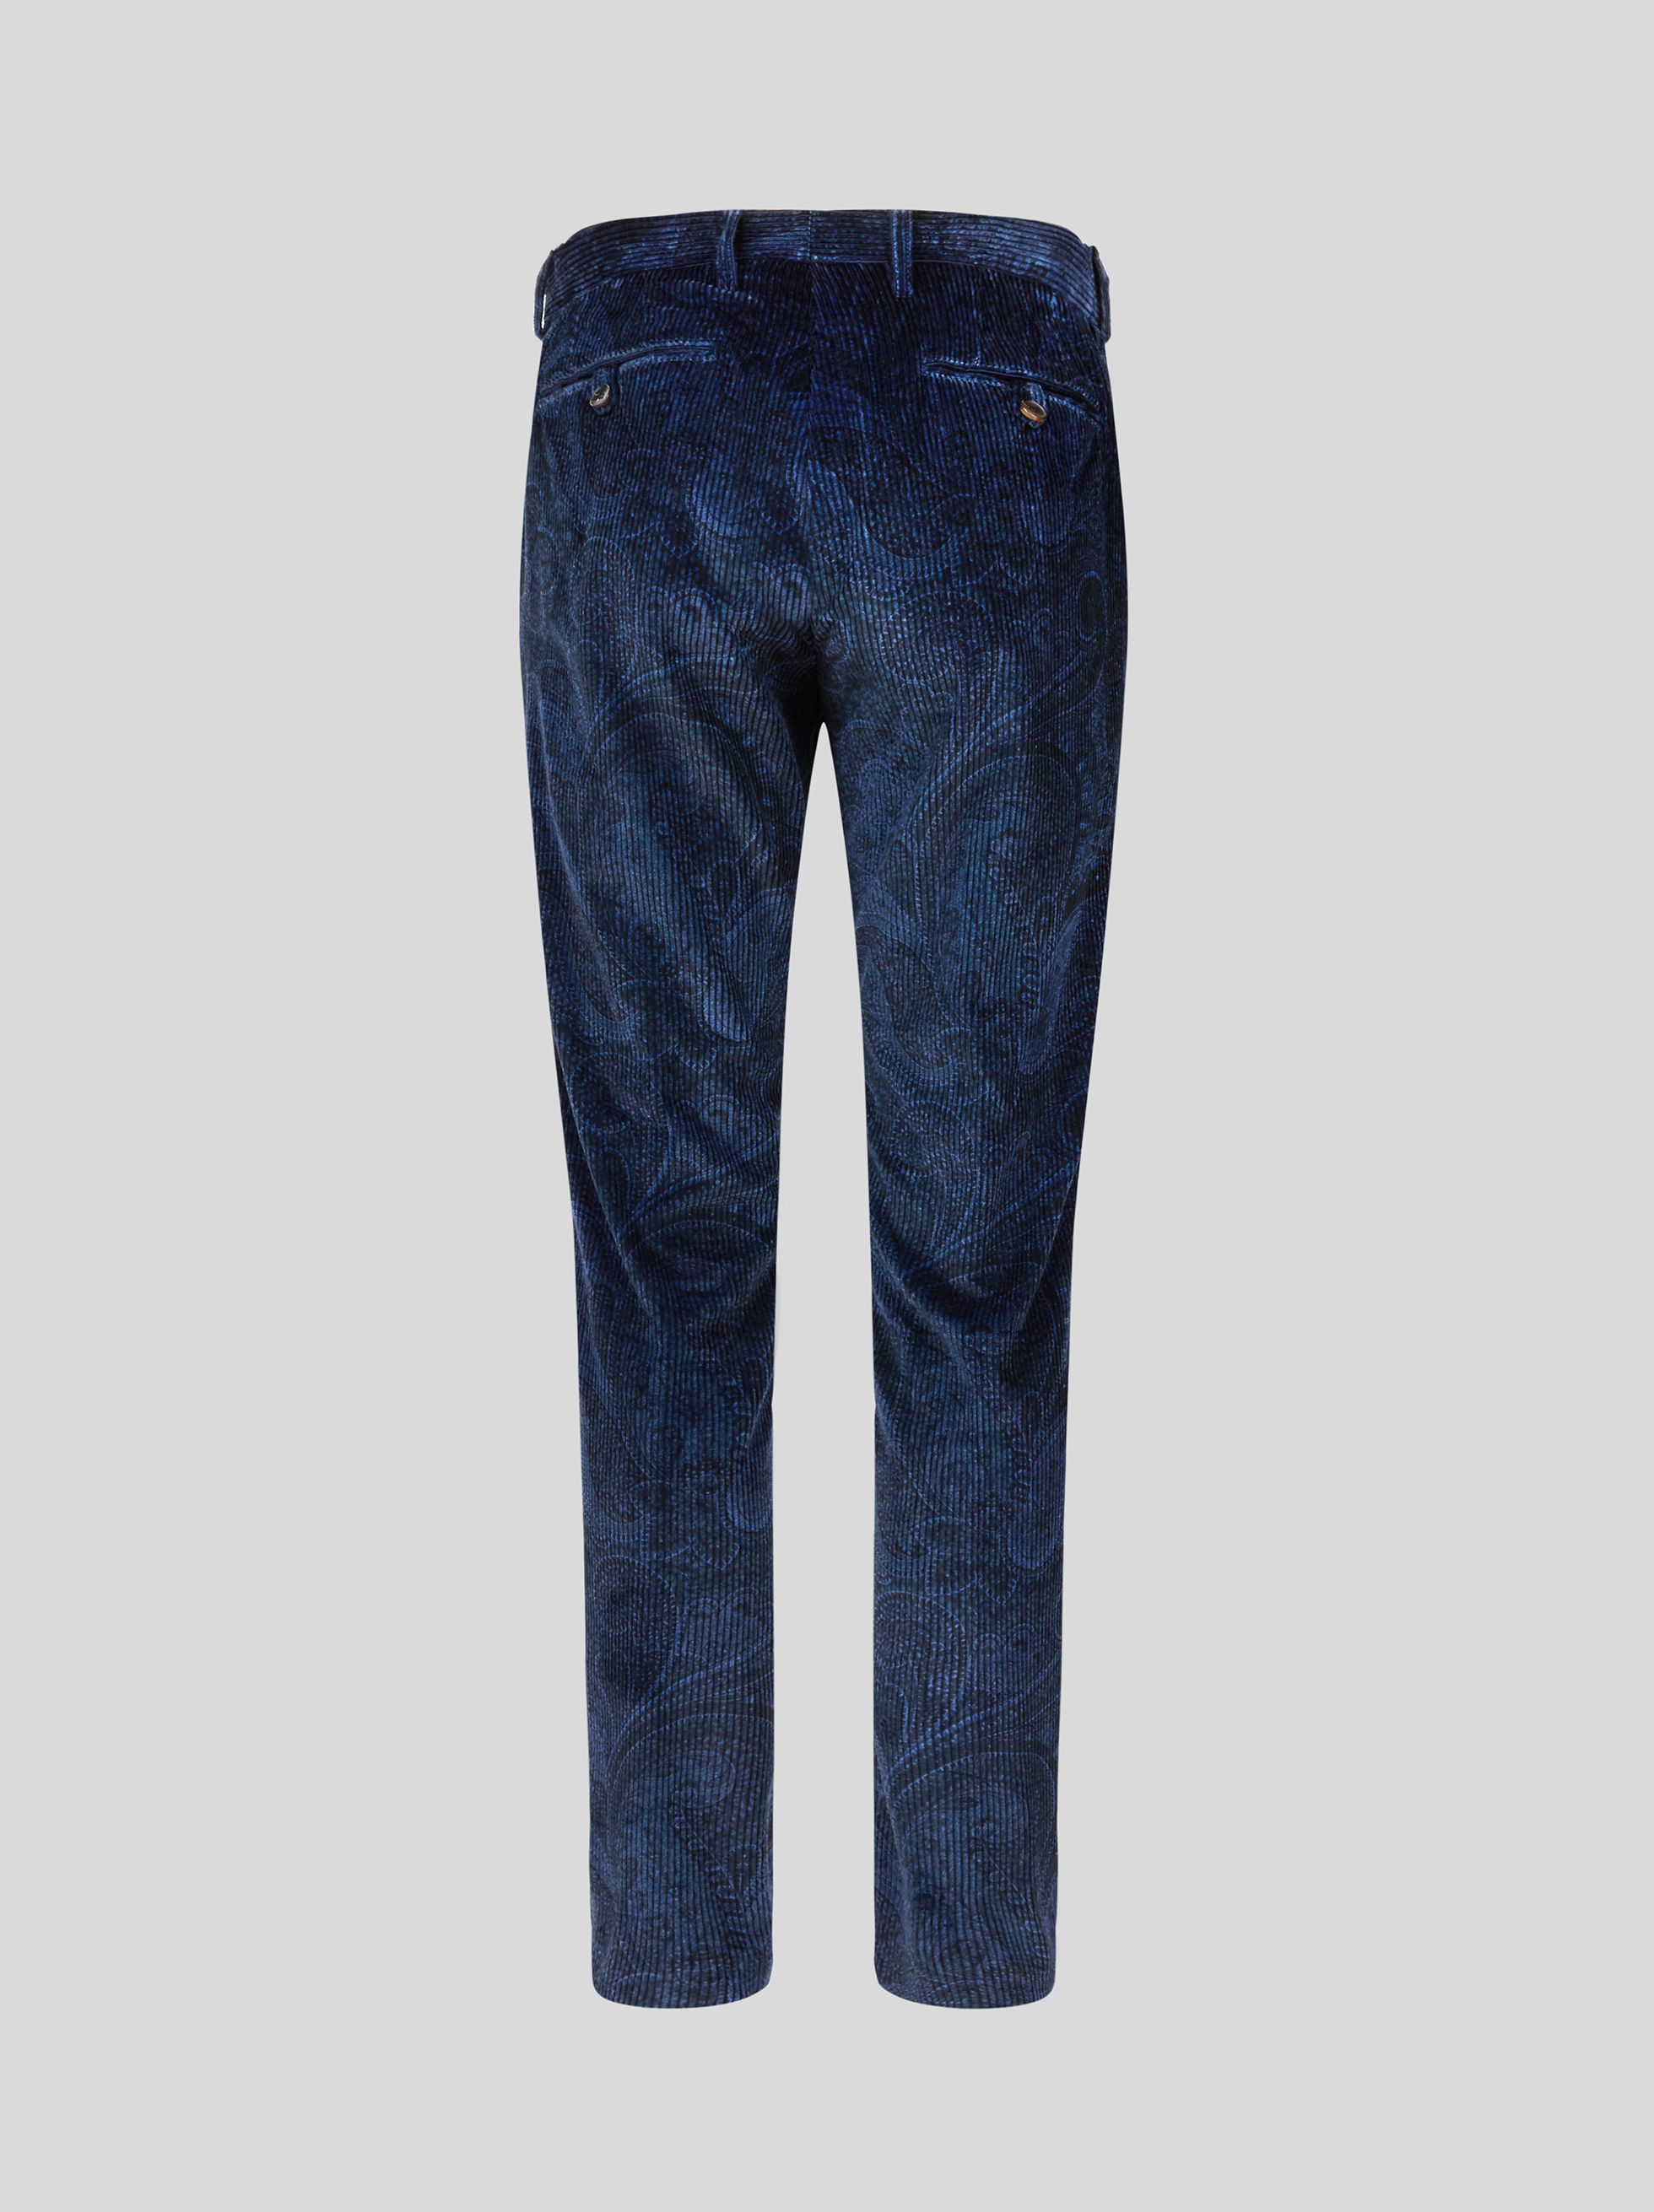 PANTALONI CASUAL IN VELLUTO PAISLEY